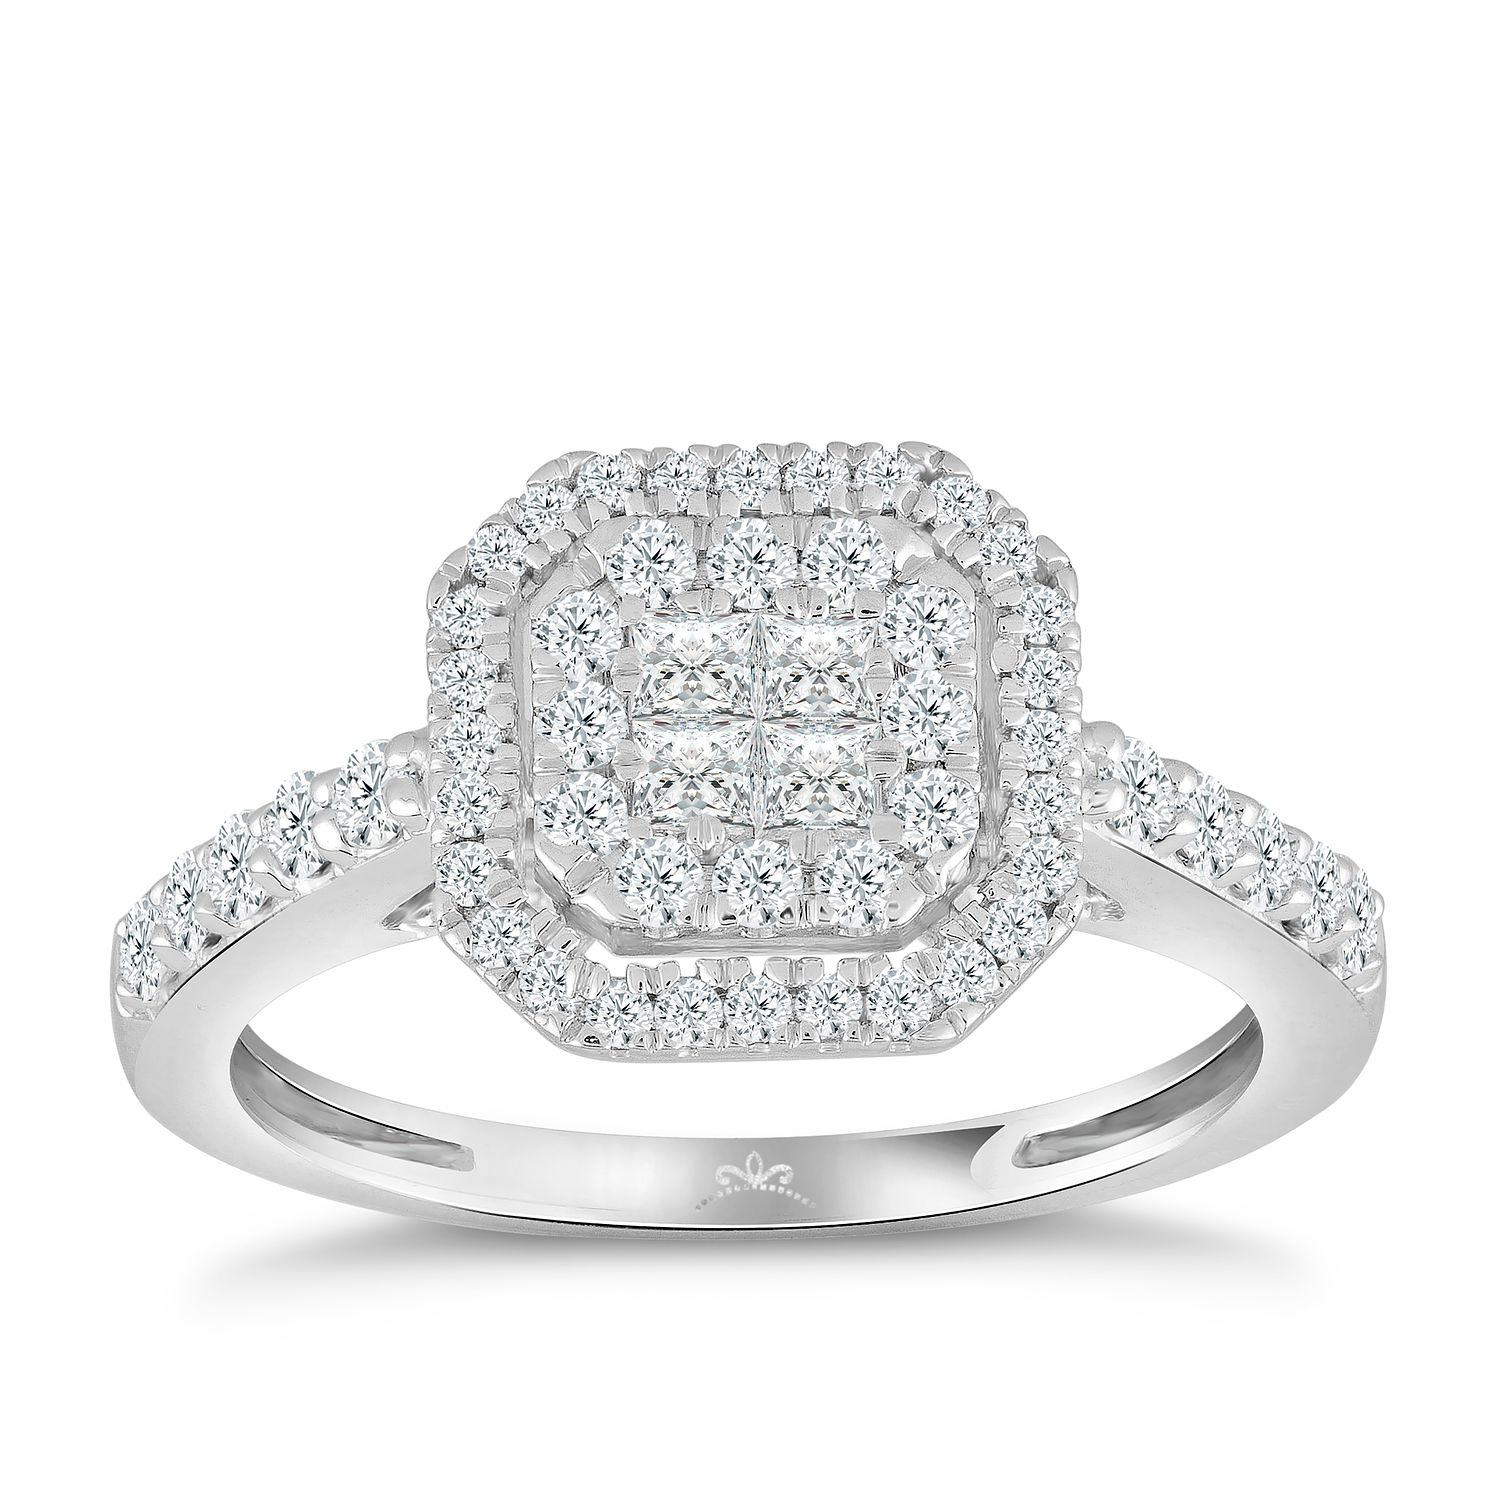 Princessa 9ct White Gold 0.66ct Diamond Cluster Ring - Product number 4576799